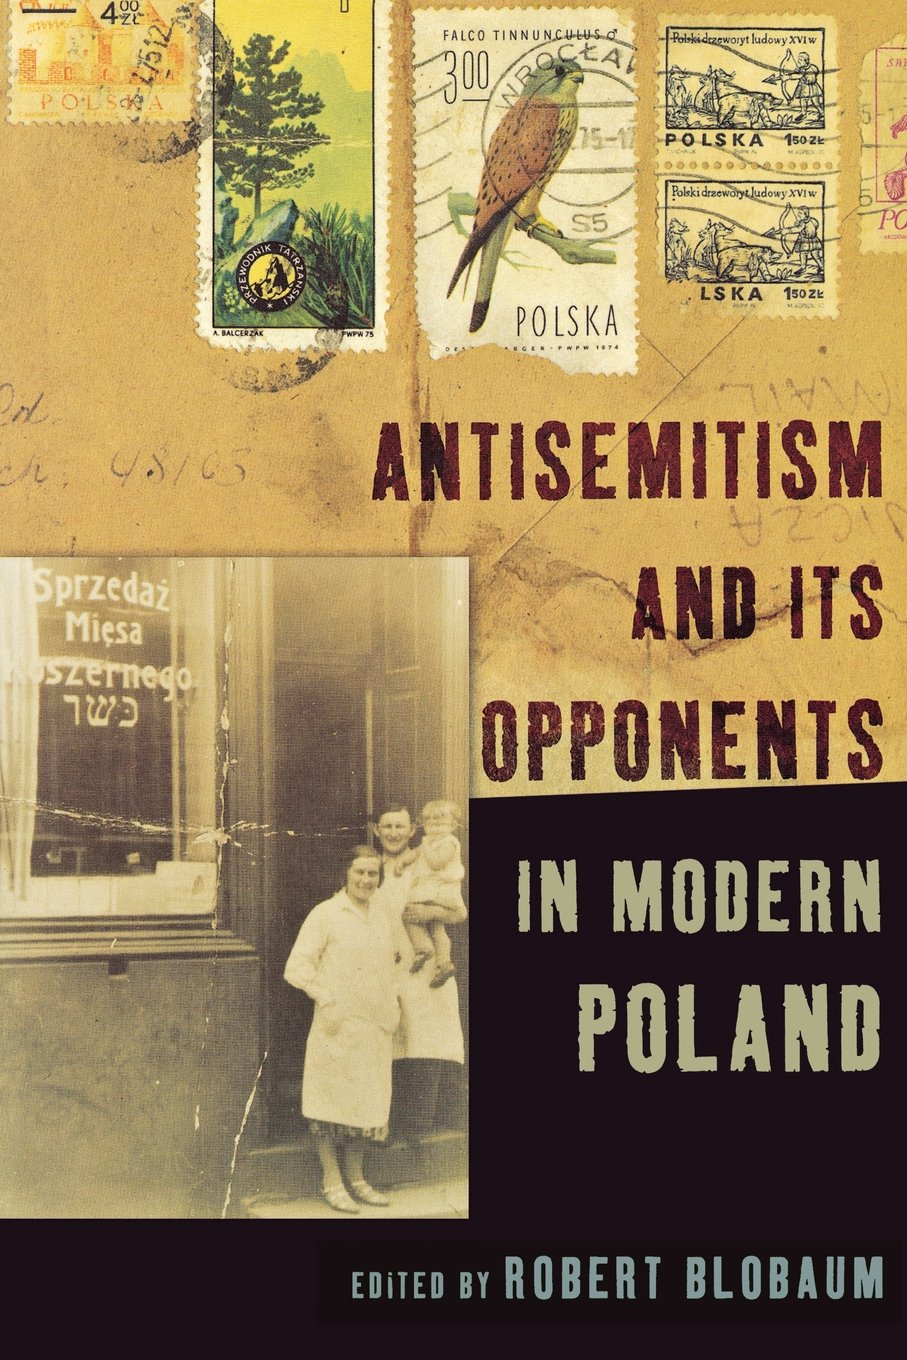 Antisemitism and its opponents in modern poland robert blobaum antisemitism and its opponents in modern poland robert blobaum 9780801489693 amazon books fandeluxe Gallery